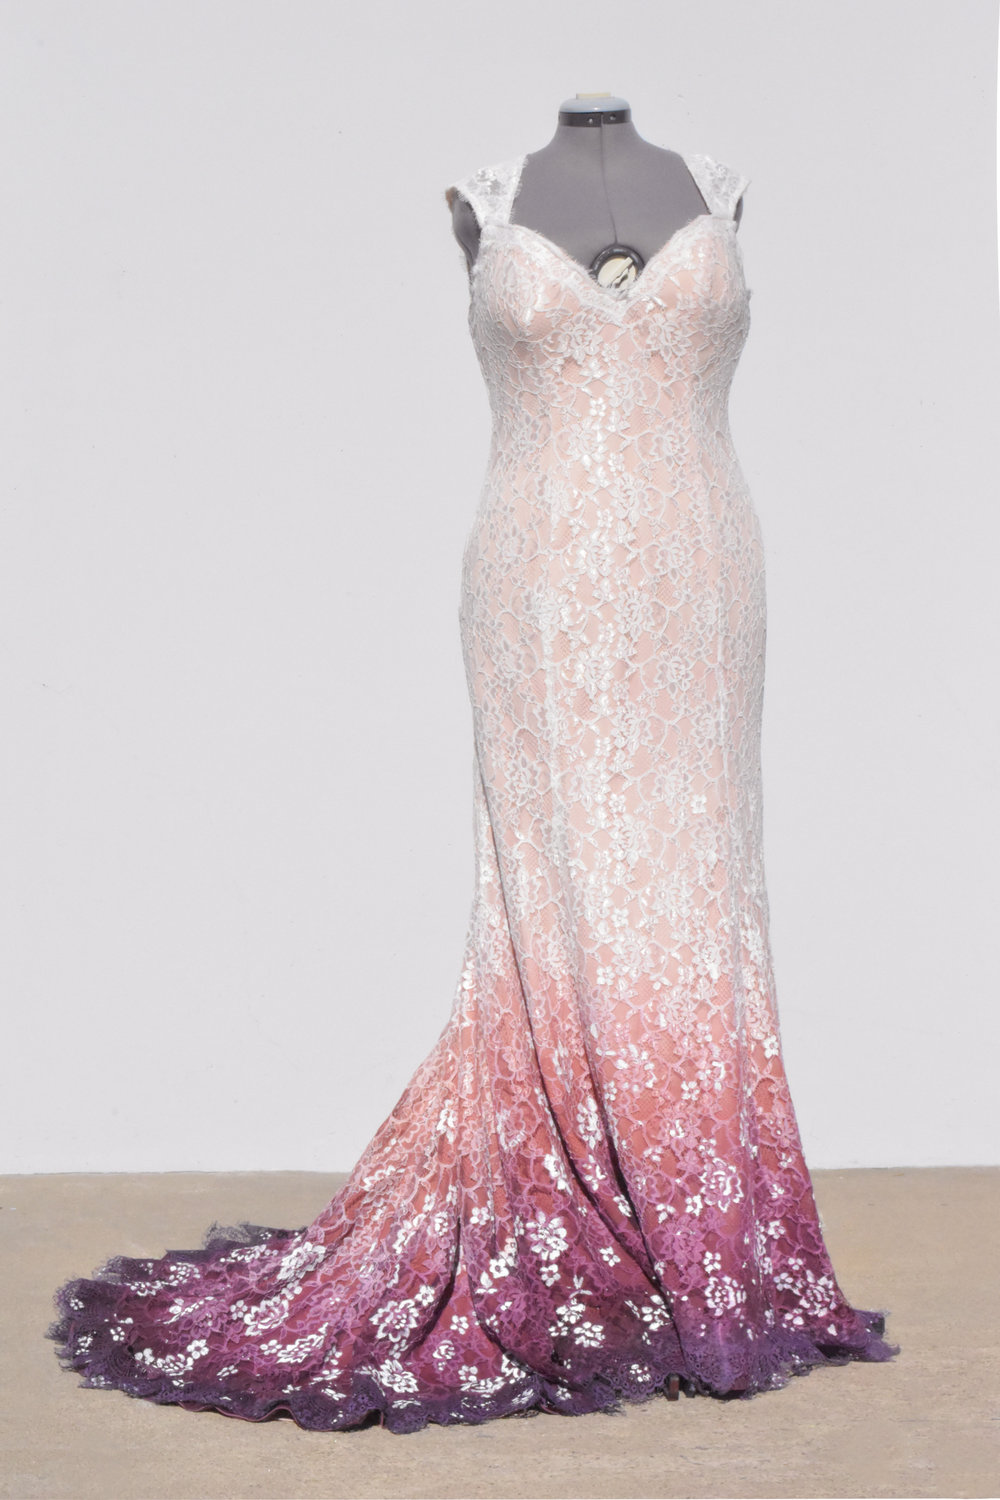 wedding-dress-front-dip-dyed-colorful.jpg